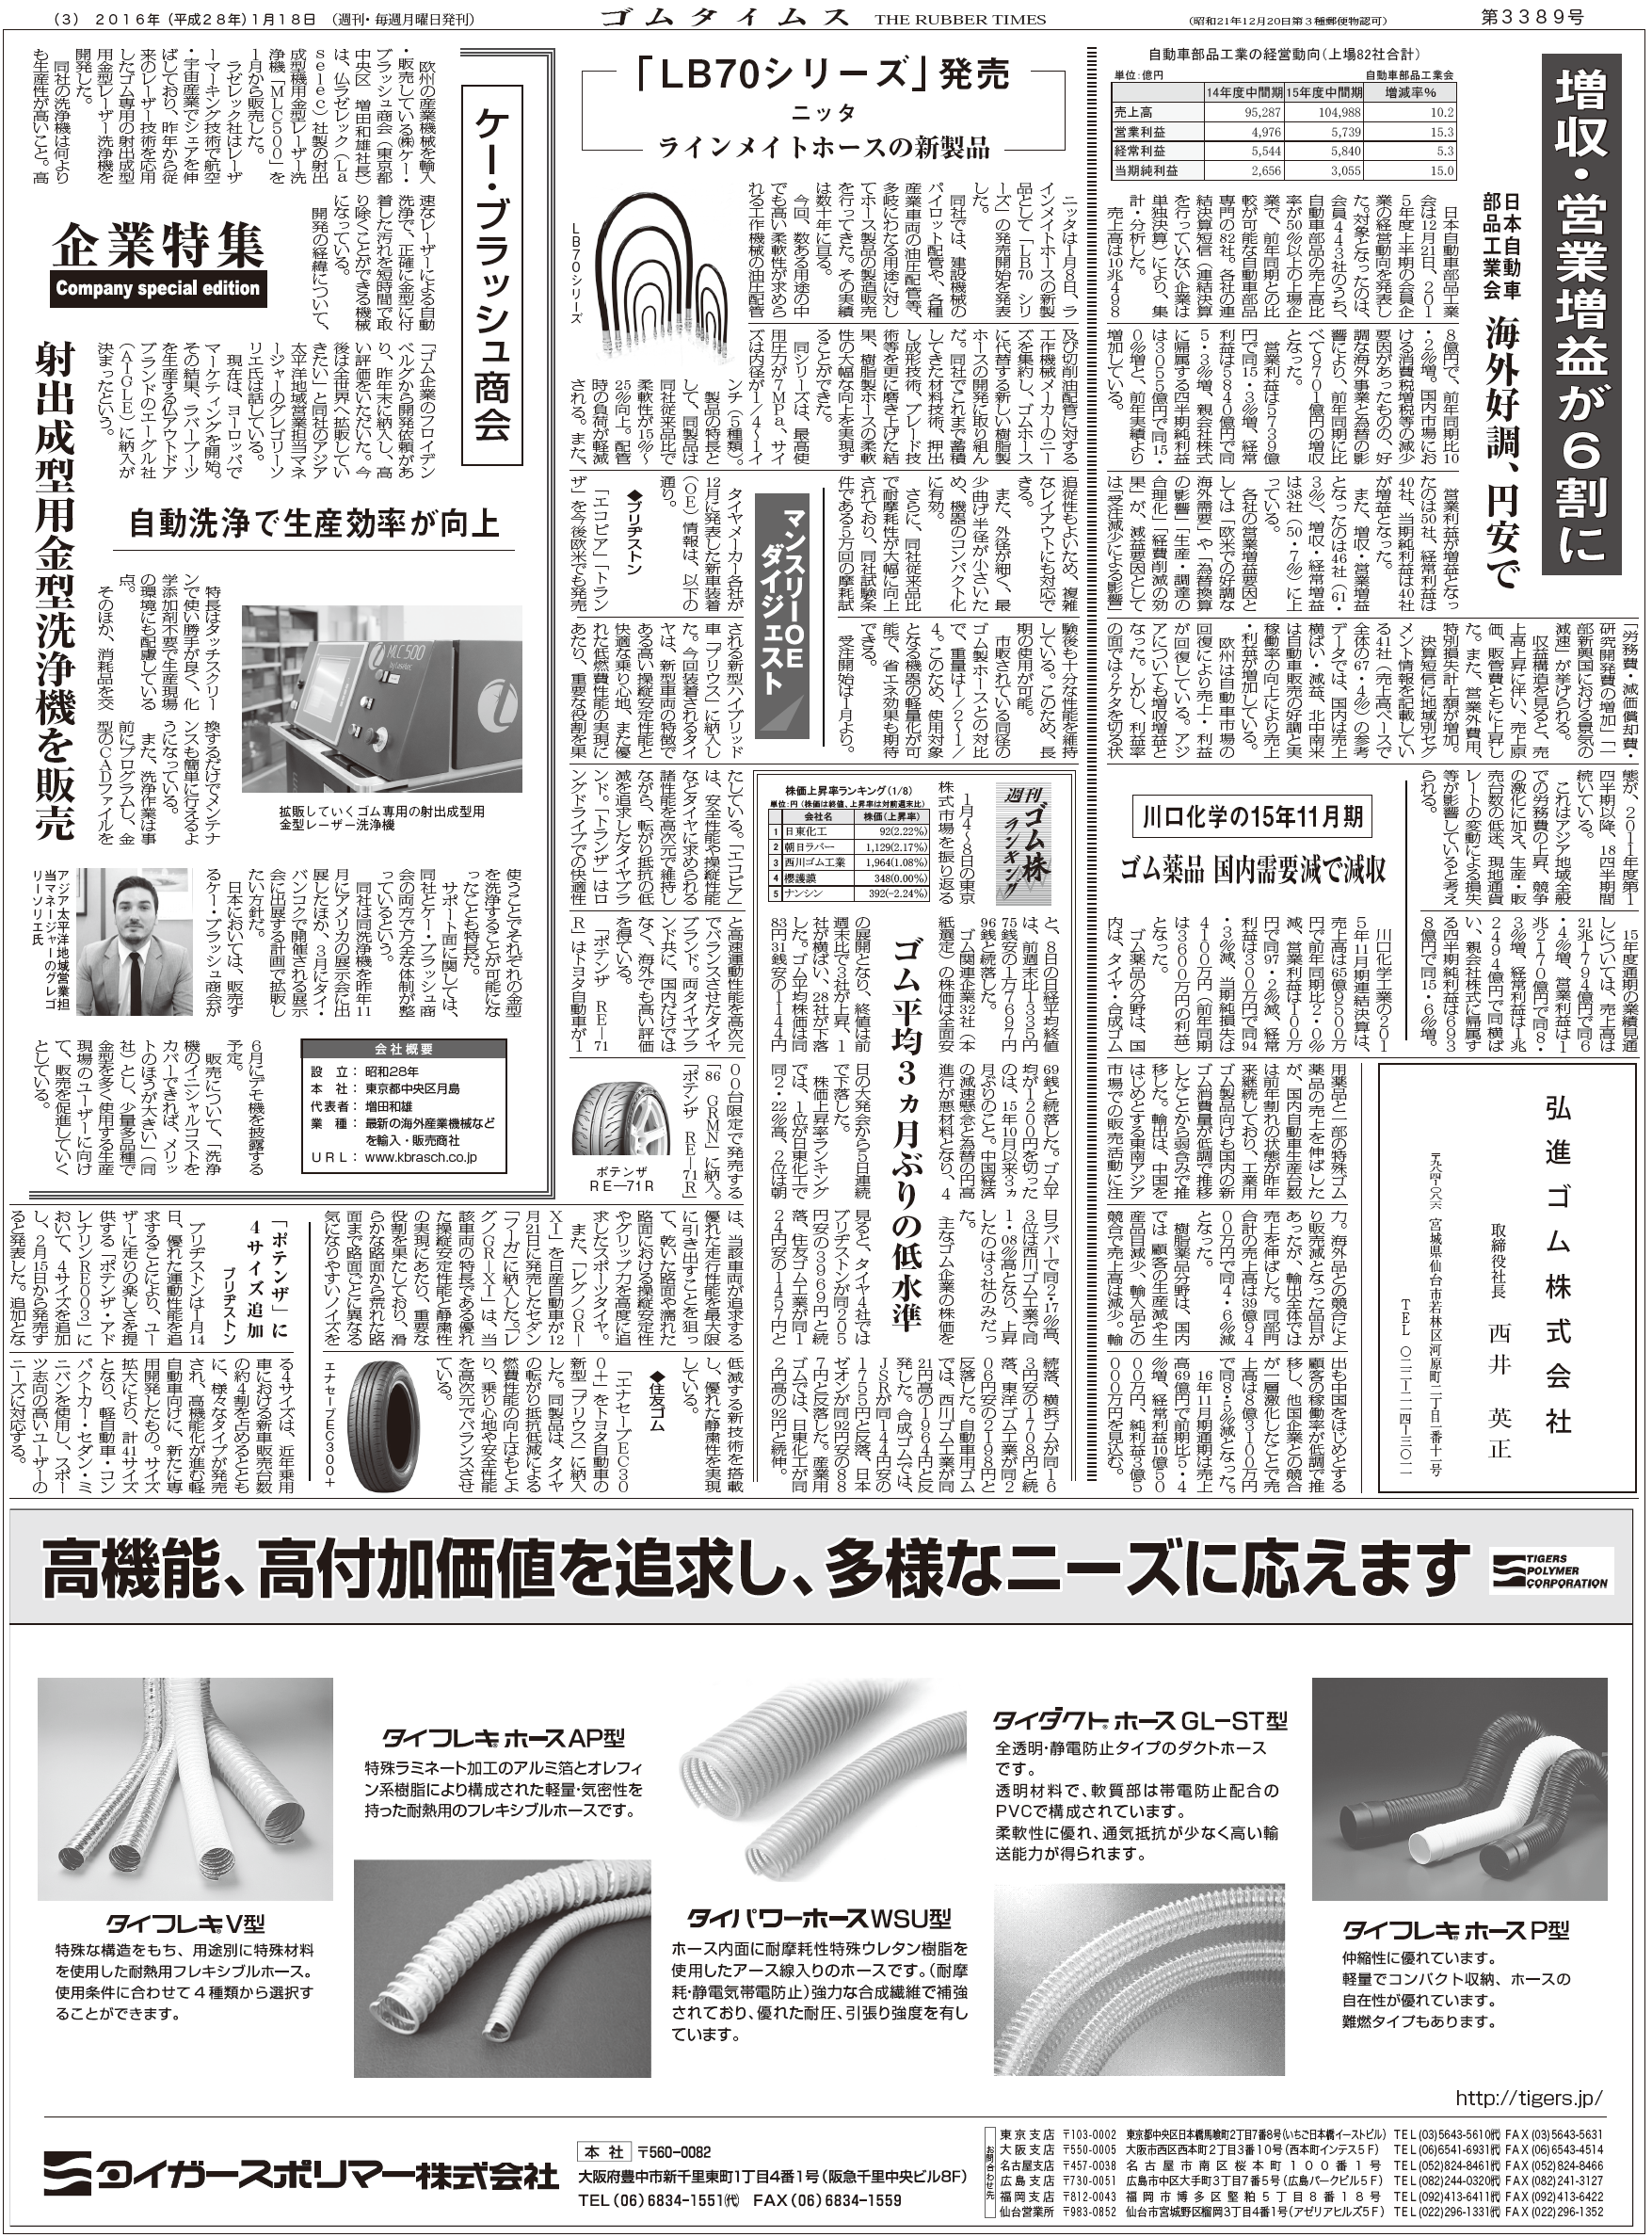 Article presse japonaise-nettoyage laser de pieces et moules industriels